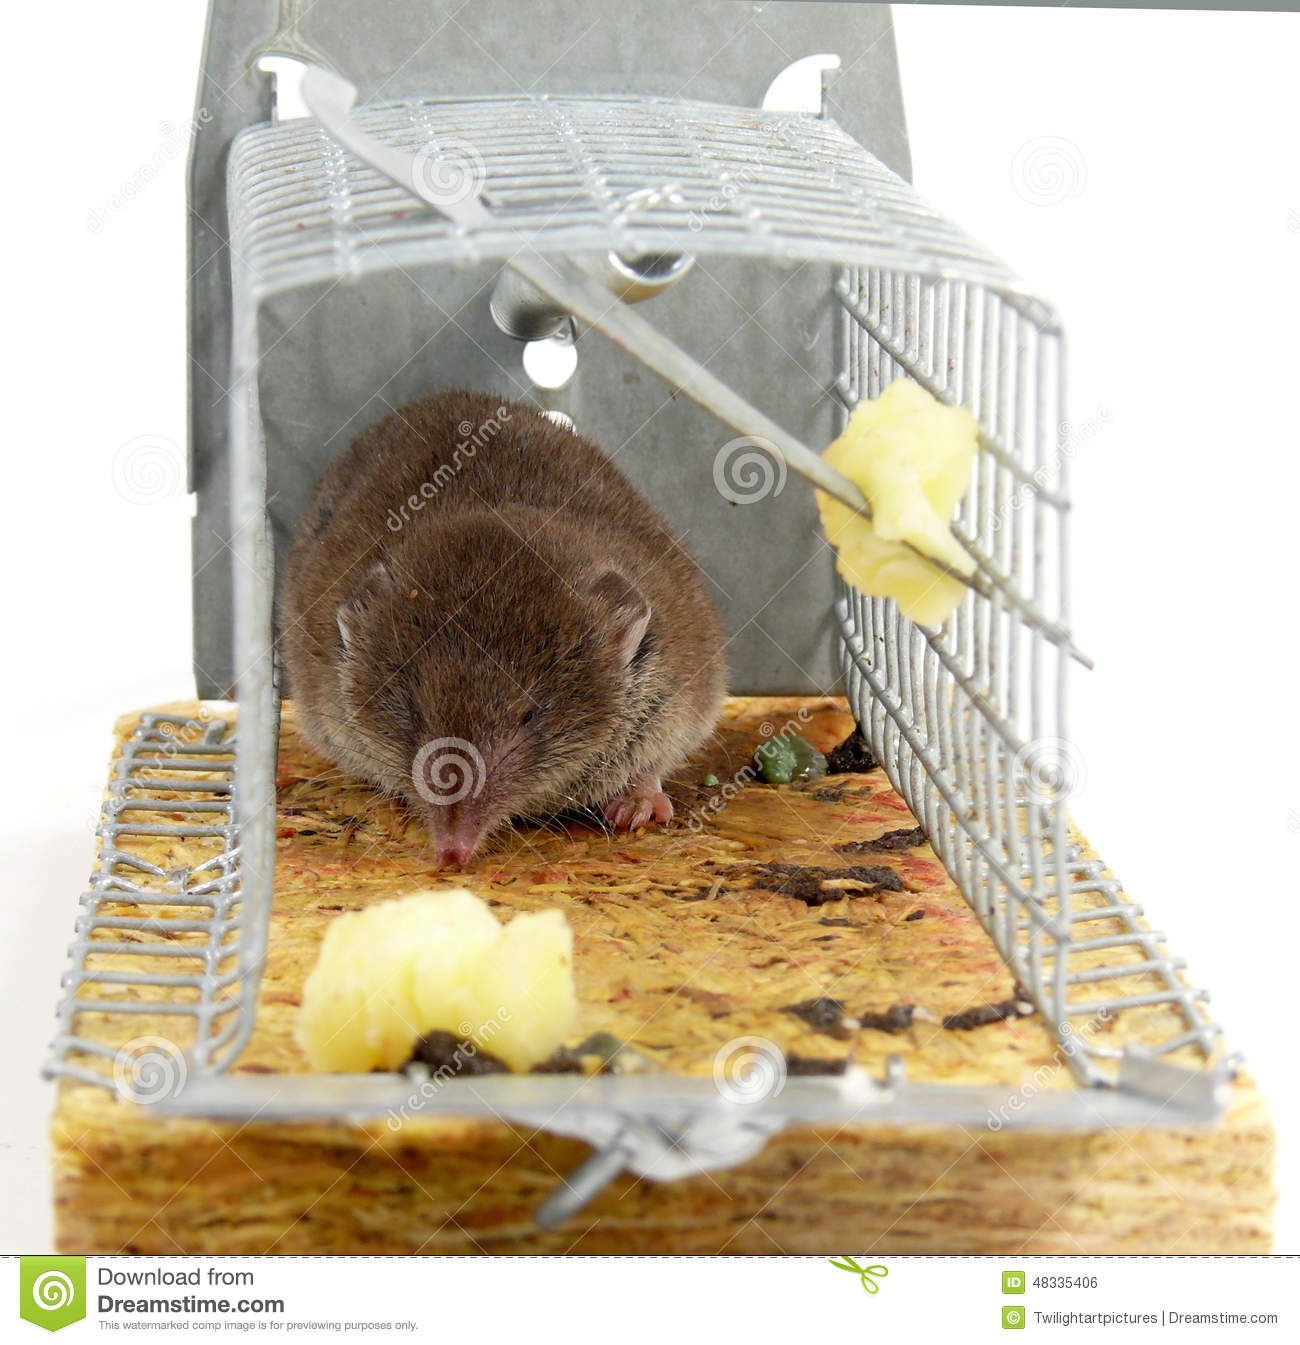 Alive trapped mouse